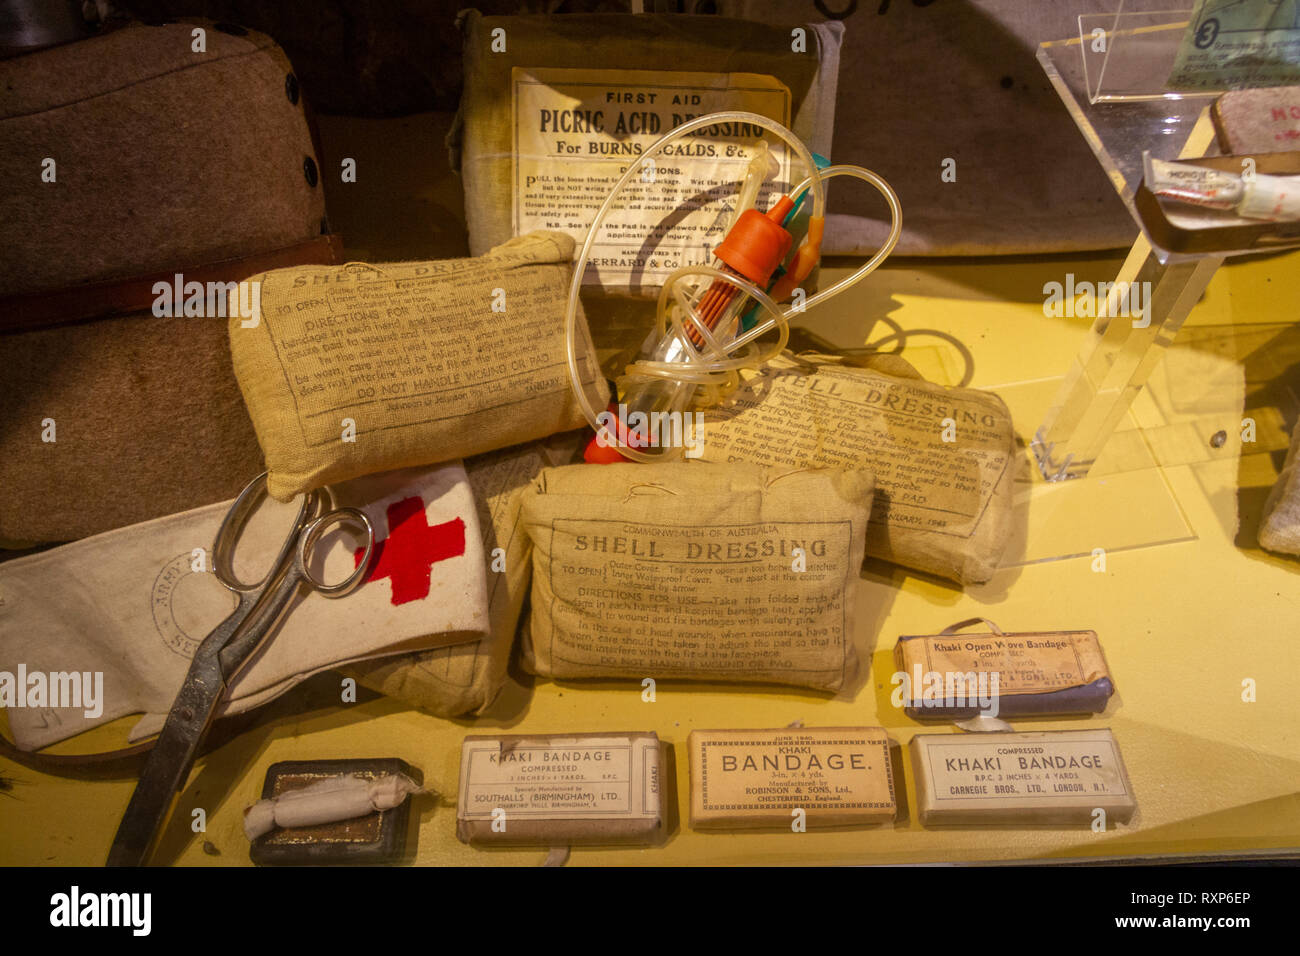 British Army WWII medical equipment on display at the German Battery at Merville, Normandy, France. - Stock Image